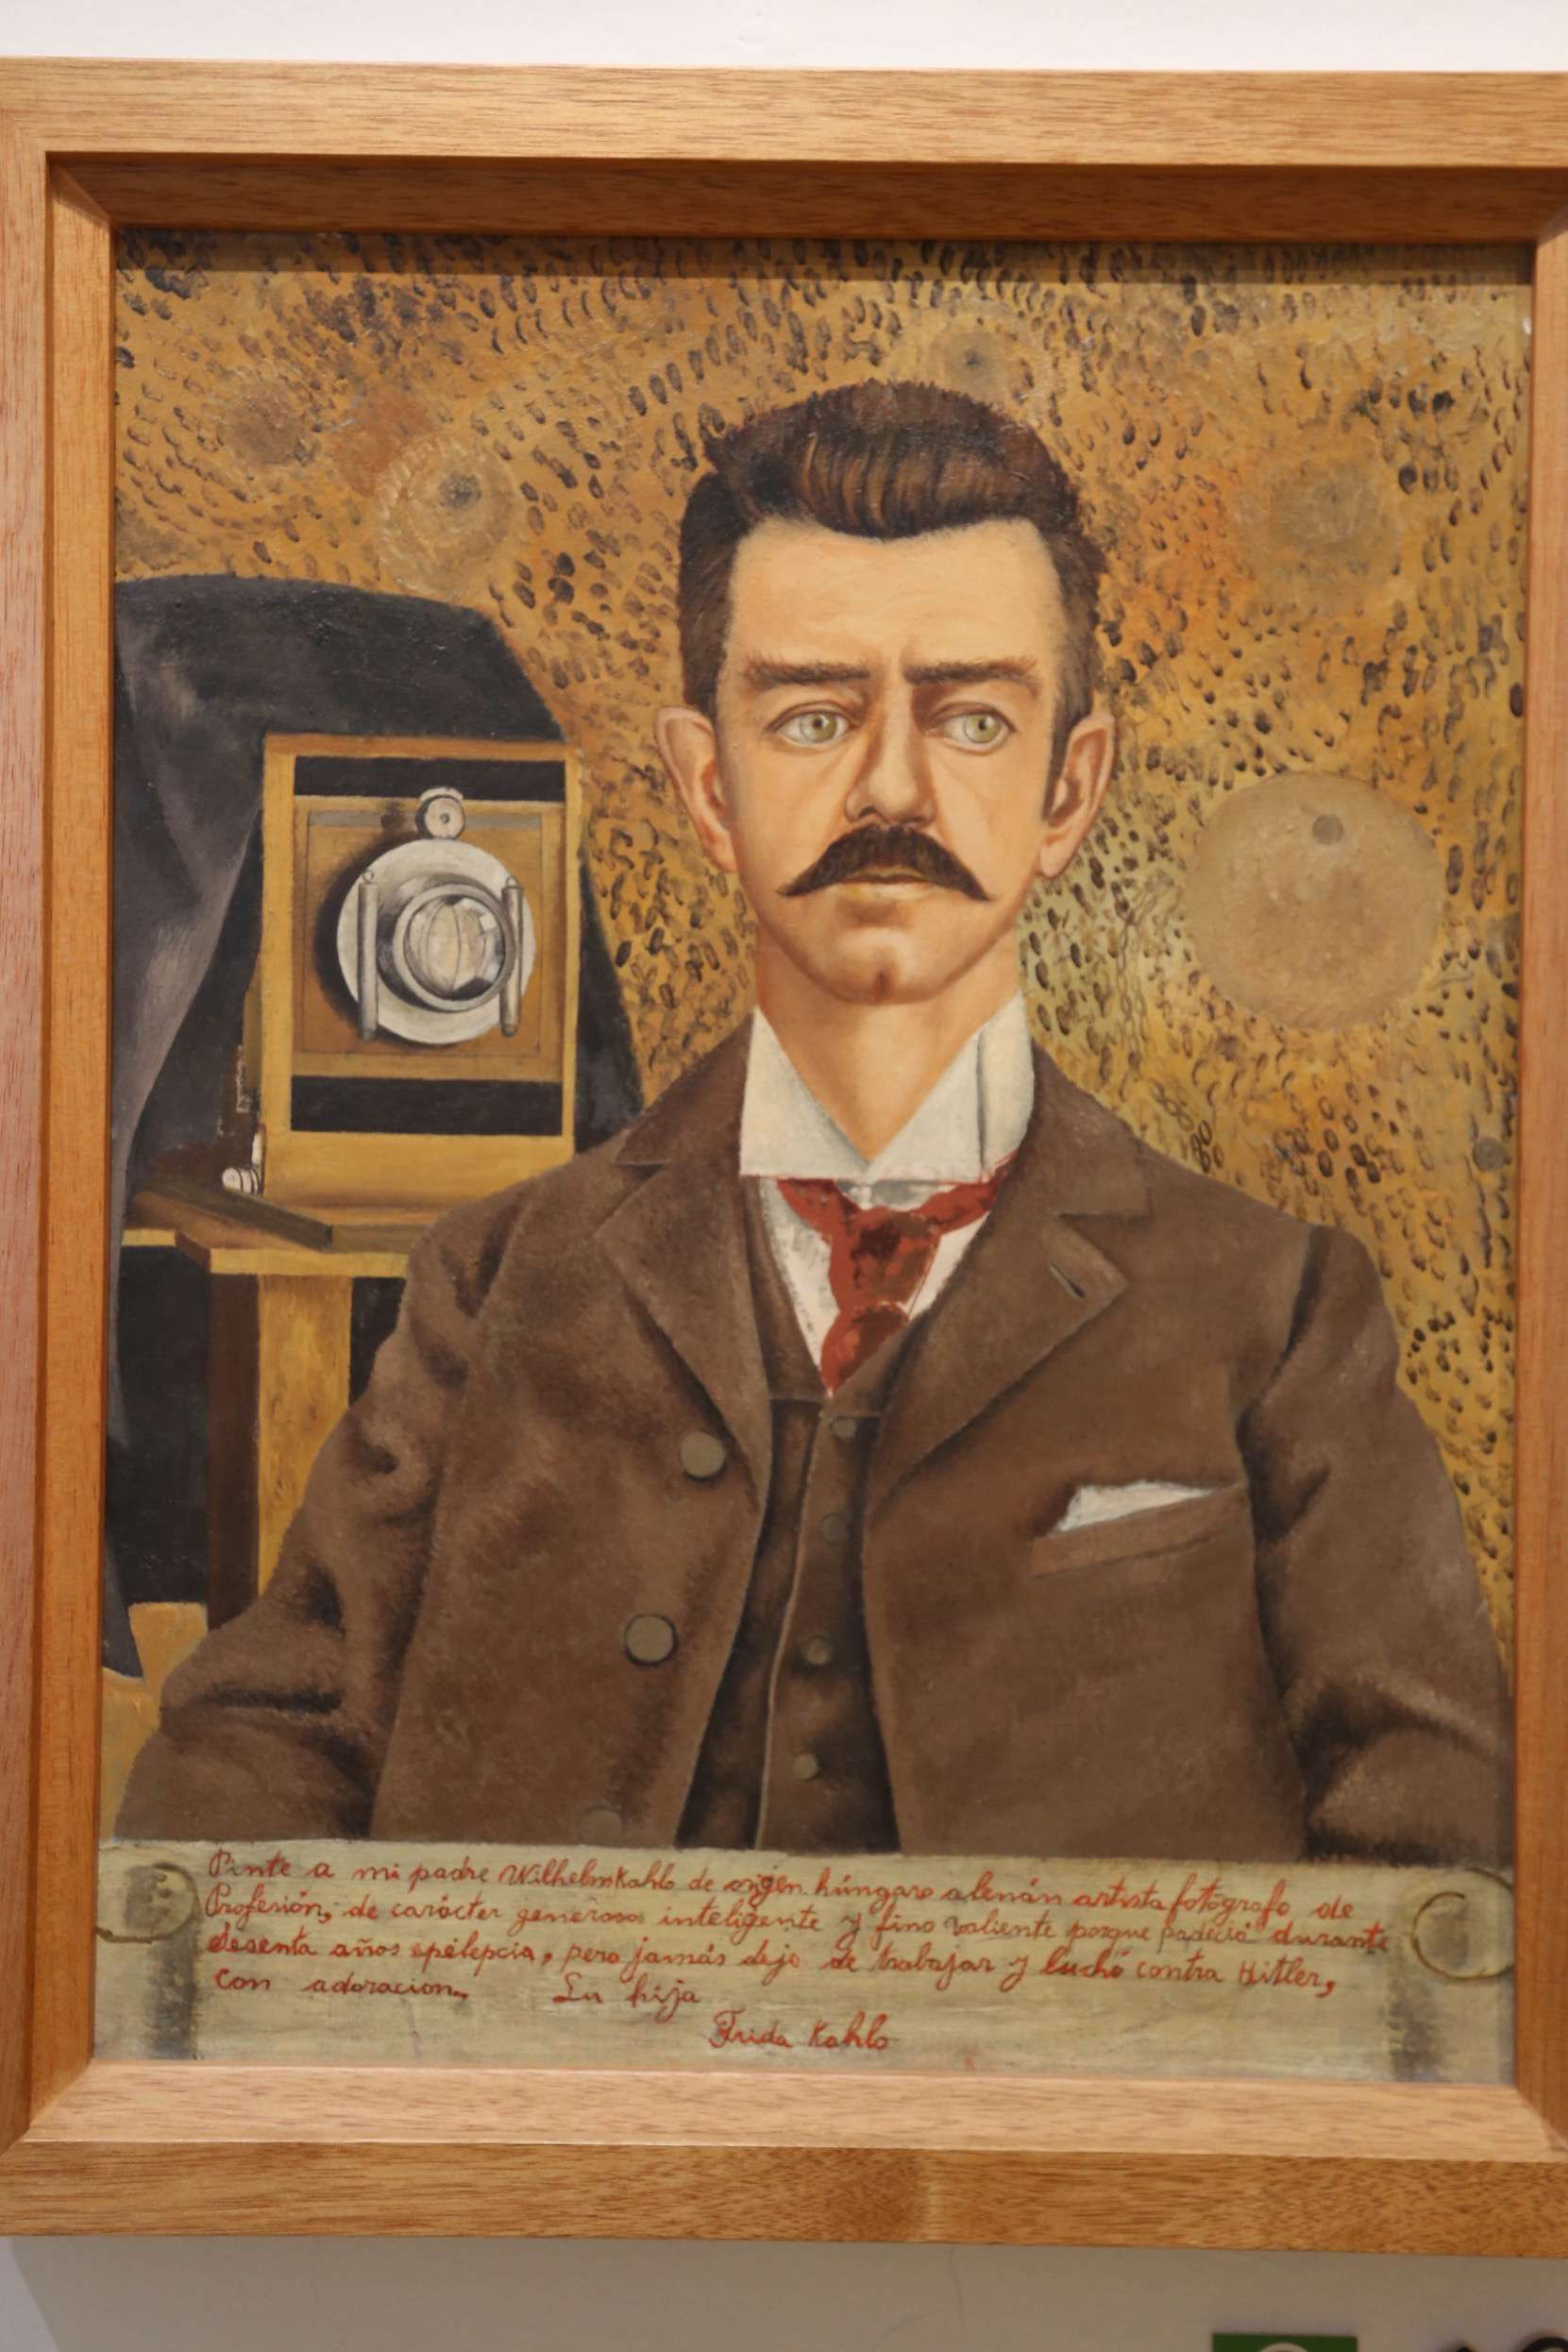 Guillermo Kahlo, Frida's father was a talented and successful photographer in Mexico City, and Frida was the only one of his six children he was close to.